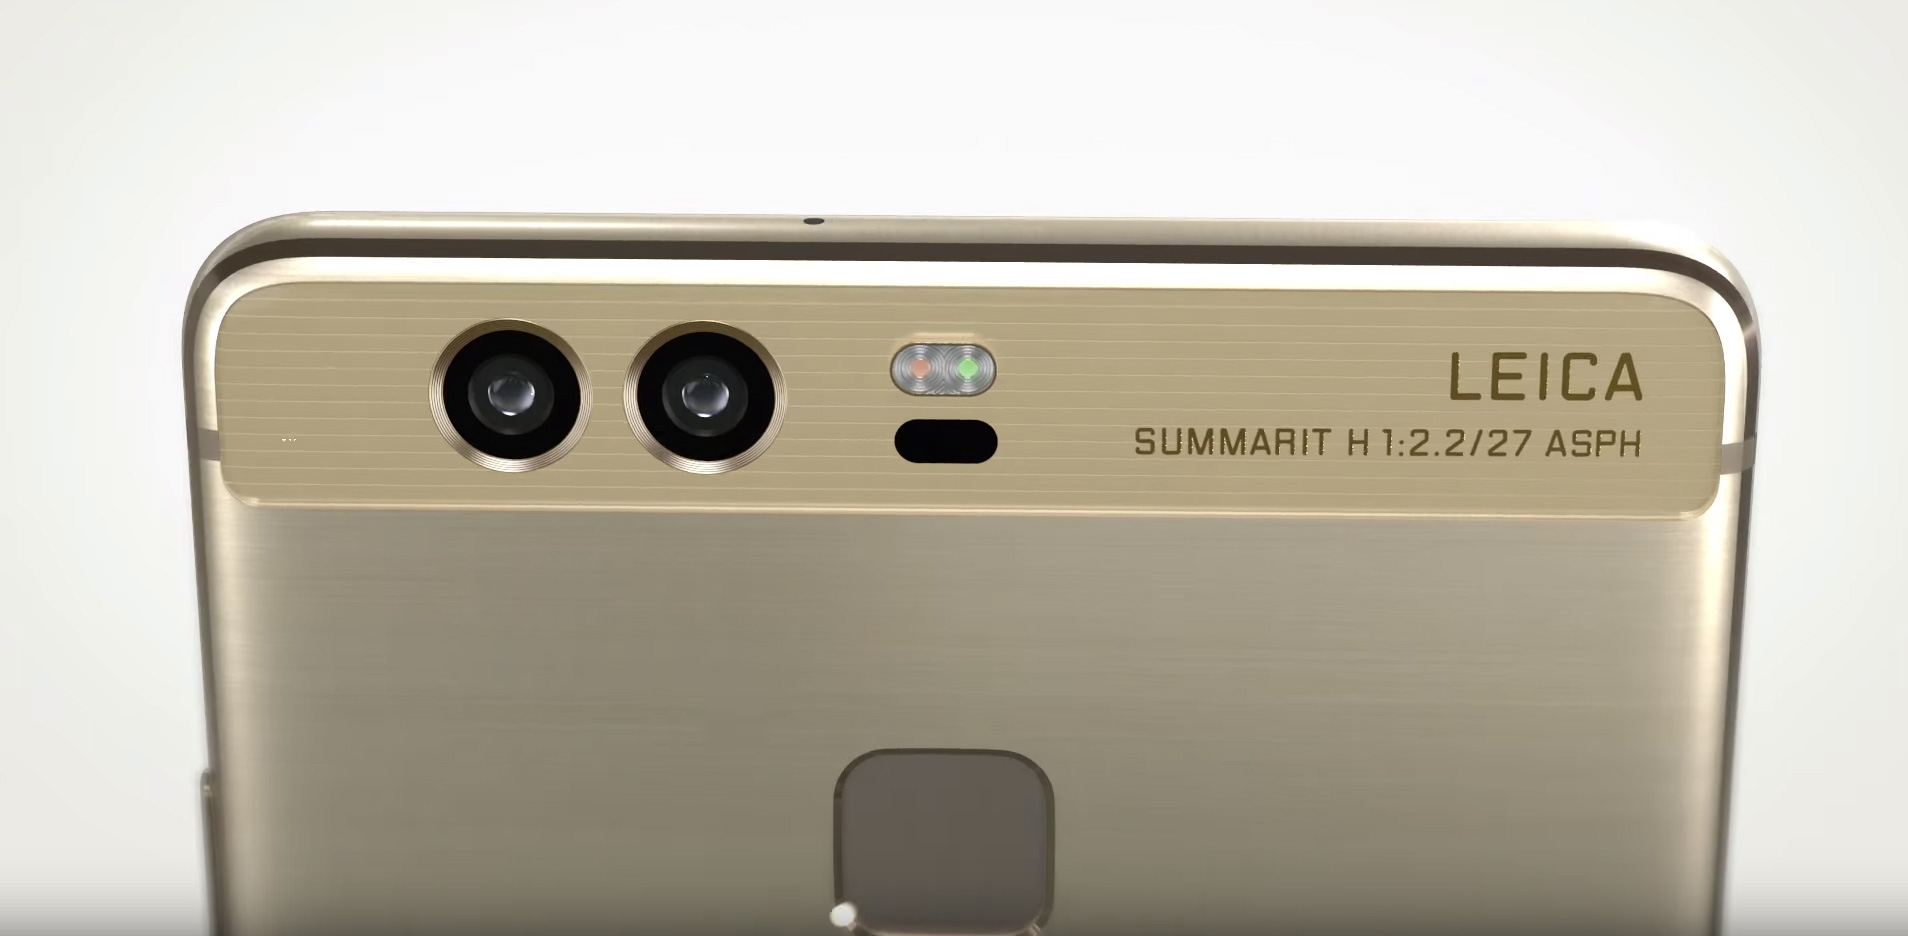 Huawei P9 P9 Plus Dual Cameras Details Release Date further Wand likewise 32608564464 further 20070918 further 2017 Toyota Ta a Sr5 V6 4x4 Double Cab Backup Lifted Lifted Truck 5200ac920f8bf44385bd5313f3898b34. on sharp 48 inch